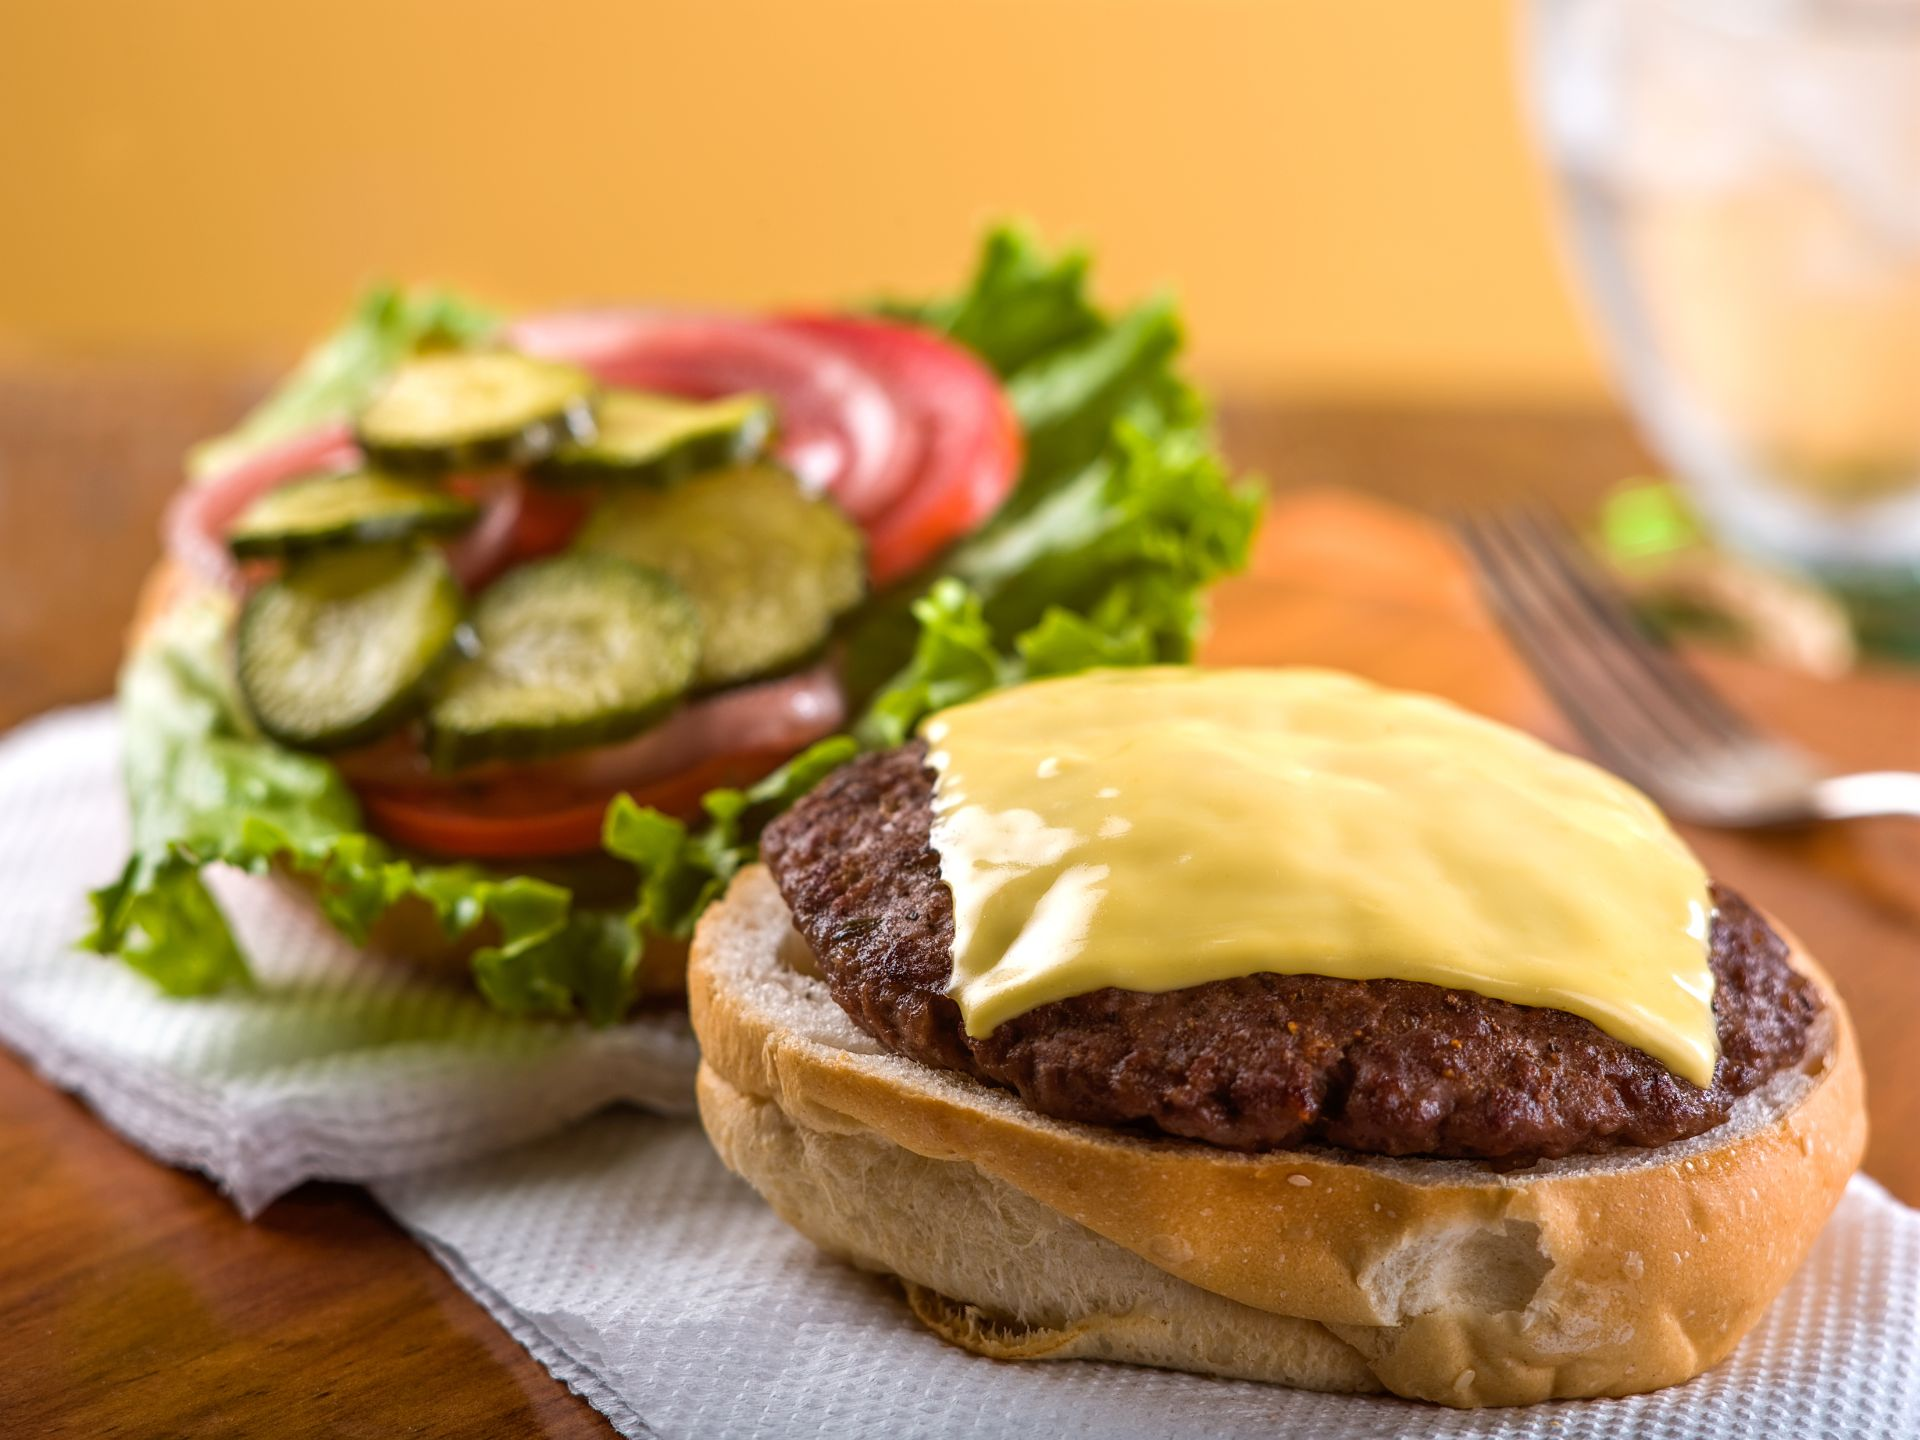 cheeseburger with lettuce, tomato, onions and pickle slices